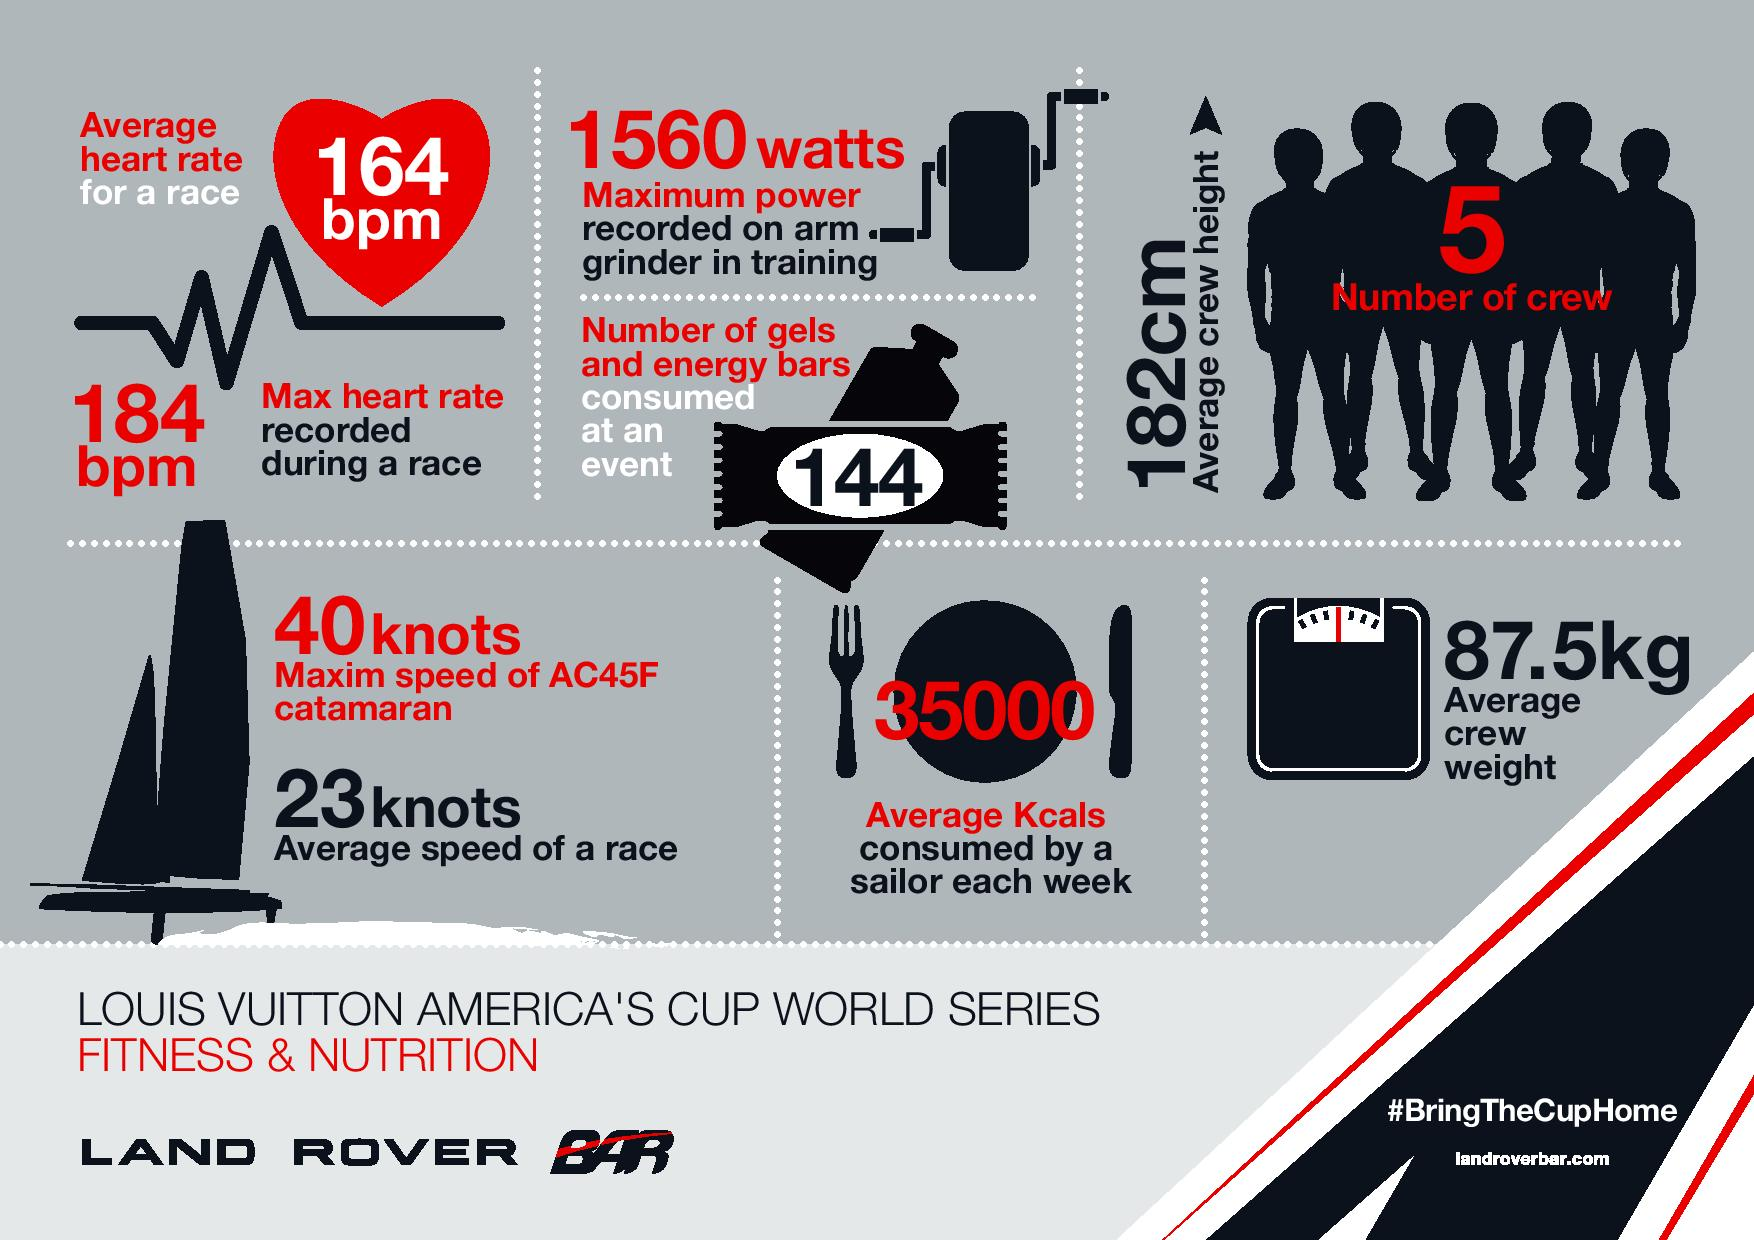 Land Rover BAR fitness stats infograpic 2.jpg